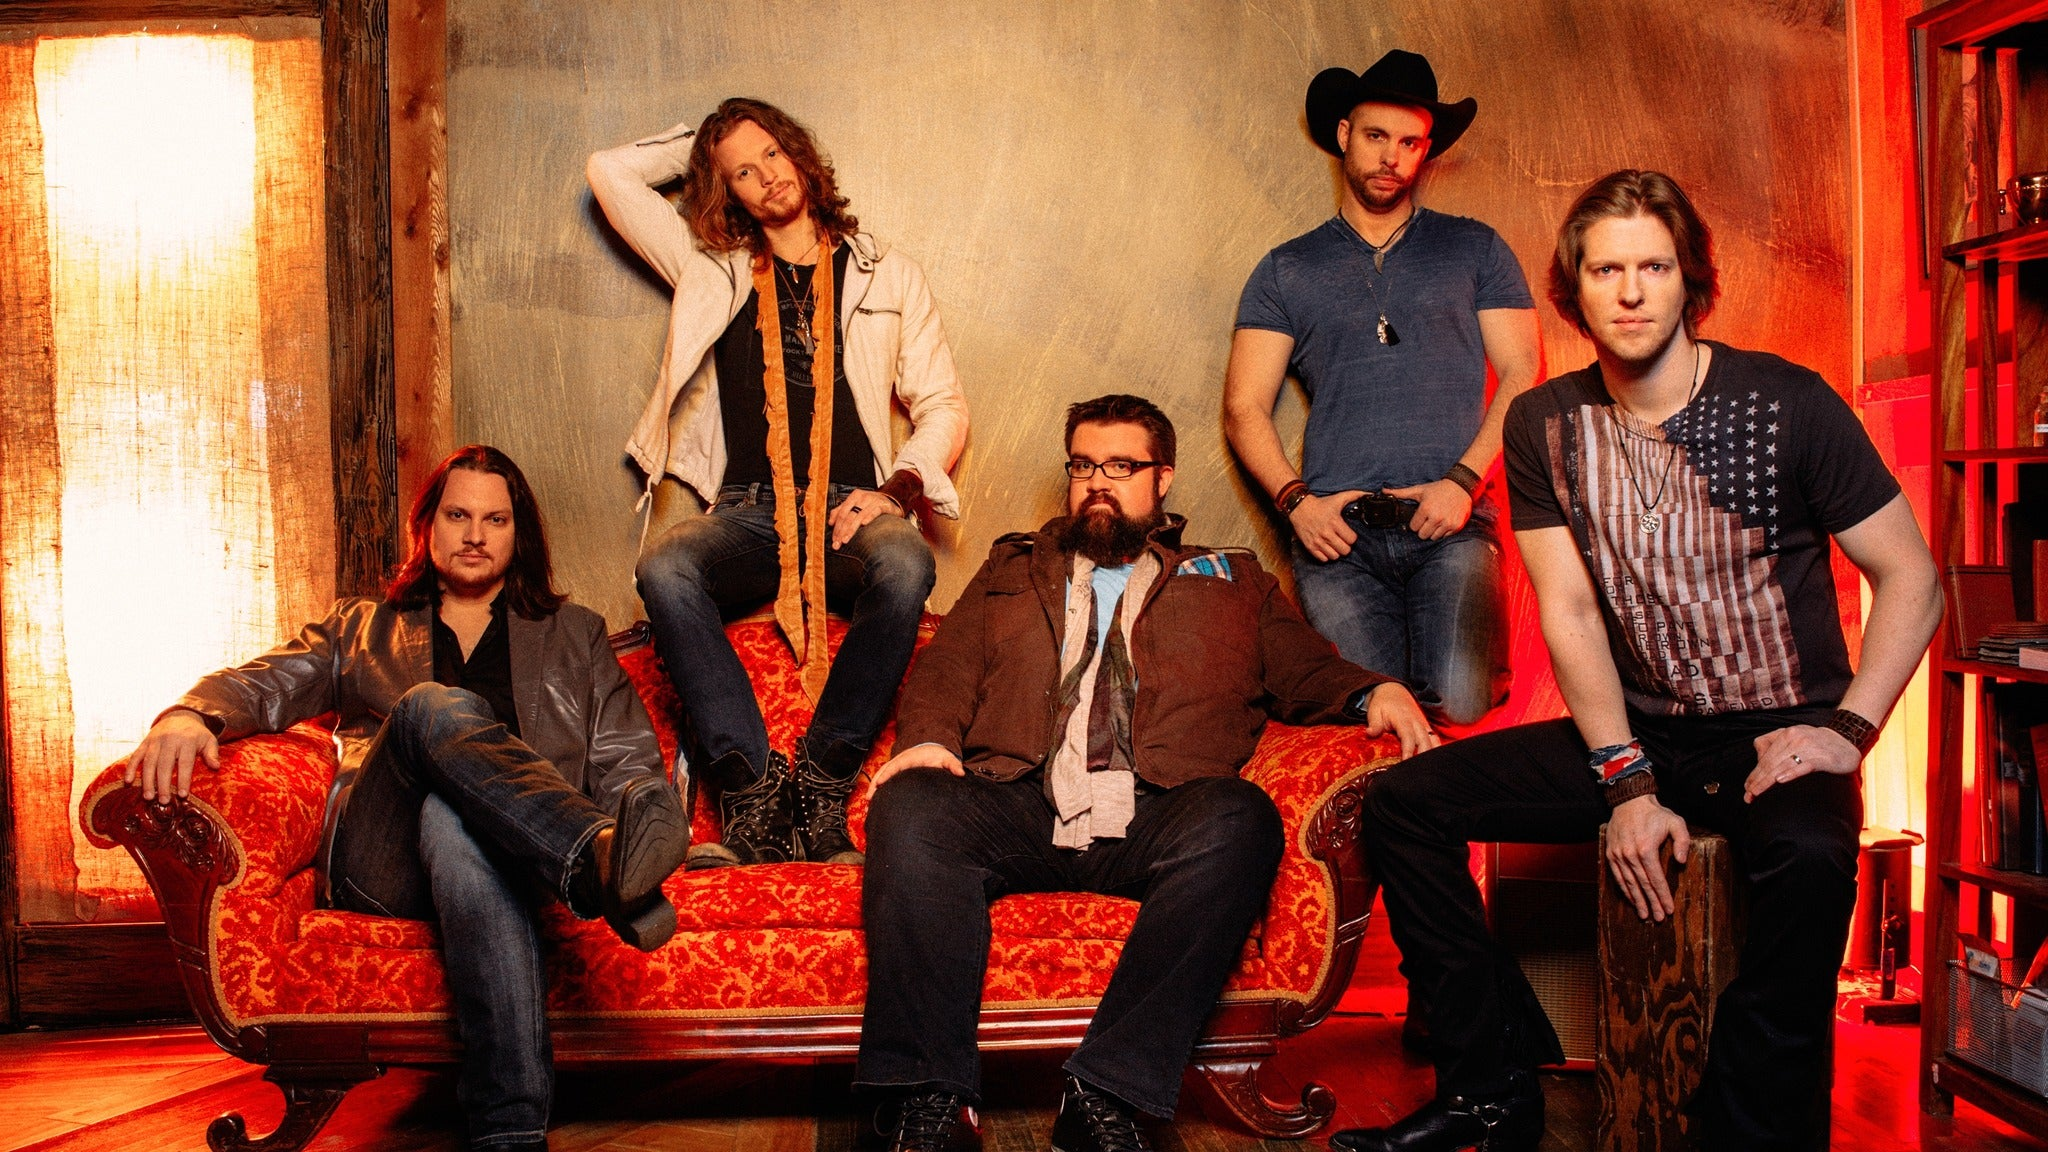 Home Free at Michigan Theater